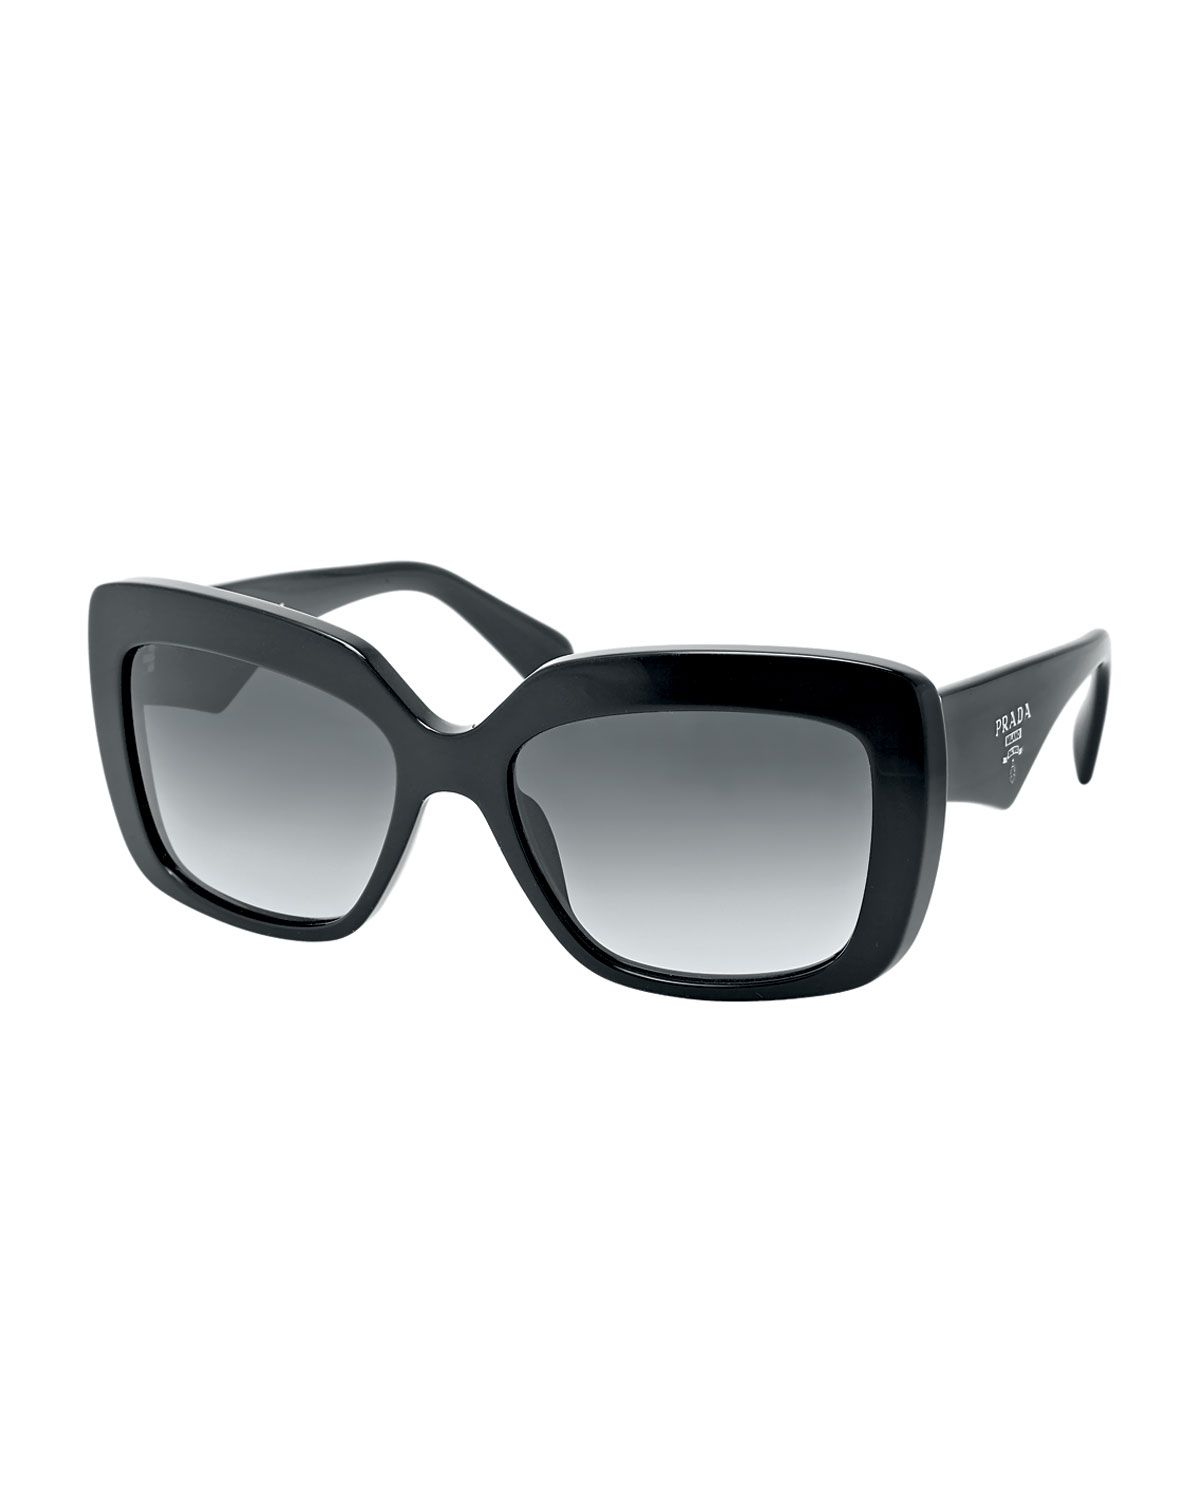 Discount New Prada Eyewear 'Triangle' sunglasses Sale Limited Edition Exclusive Online 2O5JQ8mcpi